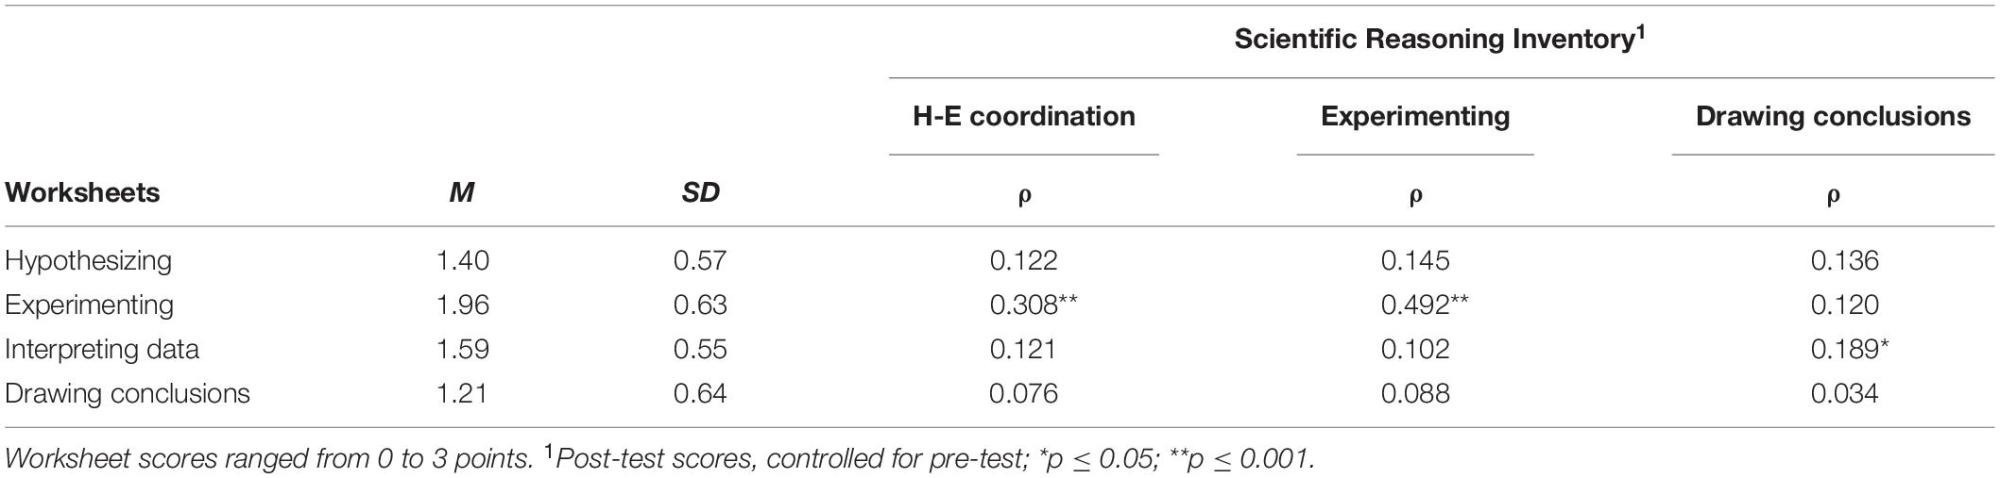 hight resolution of Frontiers   Individual Differences in Children's Development of Scientific  Reasoning Through Inquiry-Based Instruction: Who Needs Additional Guidance?    Psychology